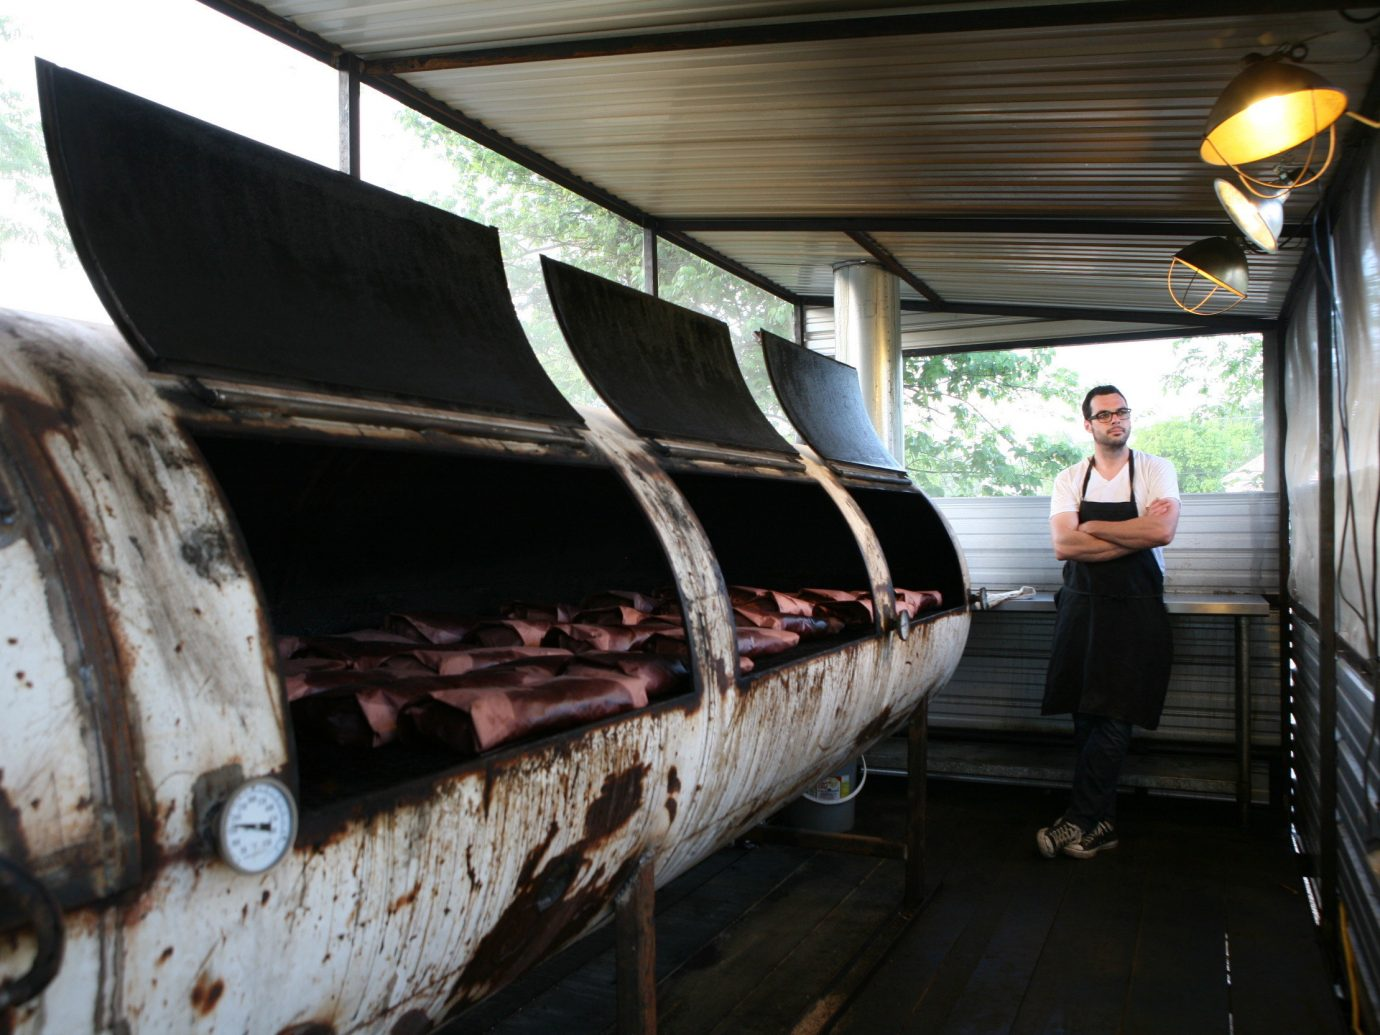 Franklin Barbecue, Austin, Texas